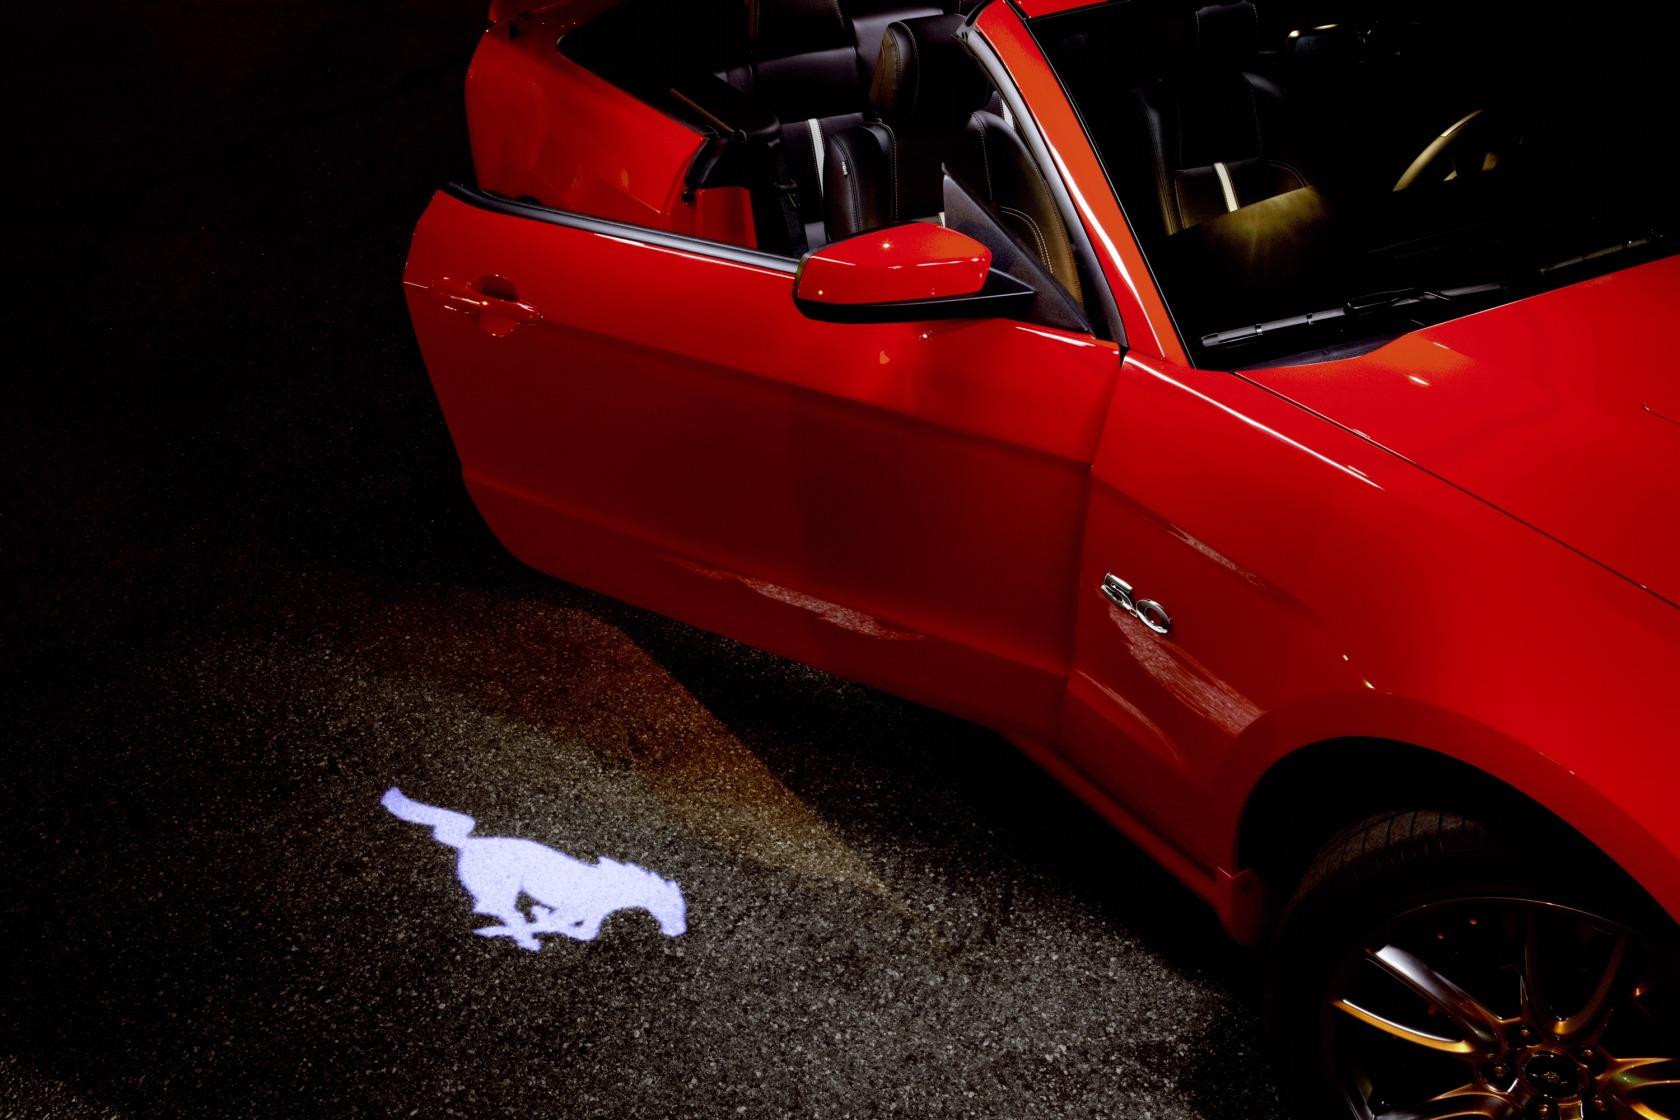 2013 Pony Projection Door Light Ford Mustang Photo